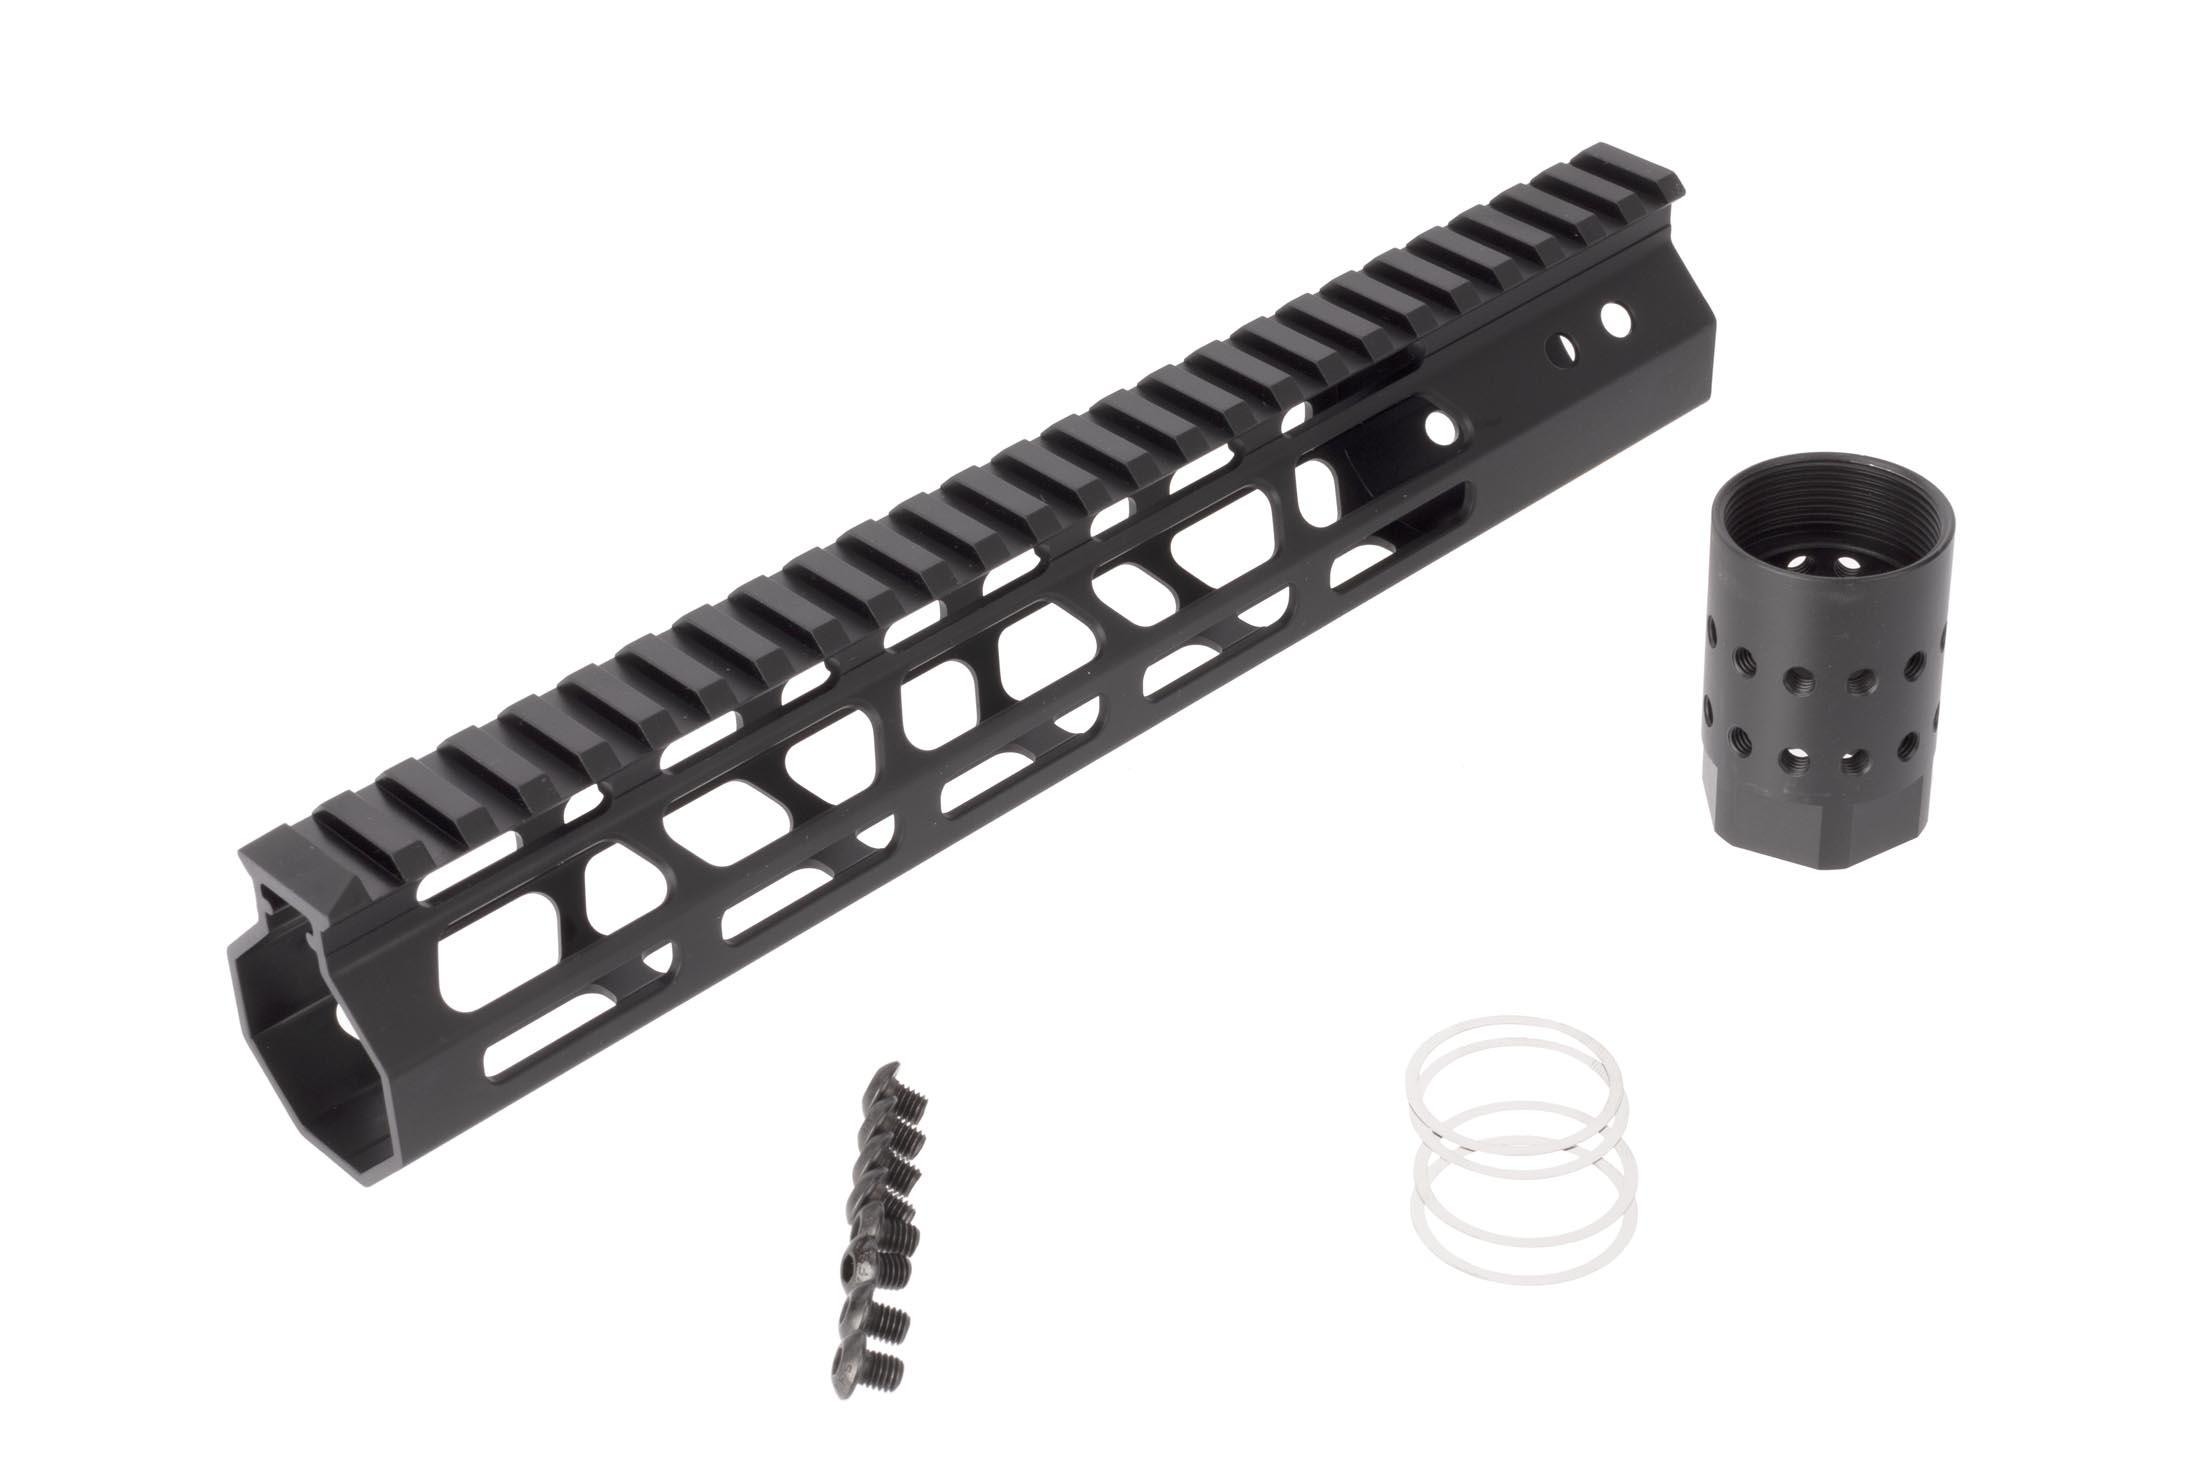 FM Products ultra light free float M-LOK handguard provides 10.5 inches of real estate for accessories and includes mounting hardware.